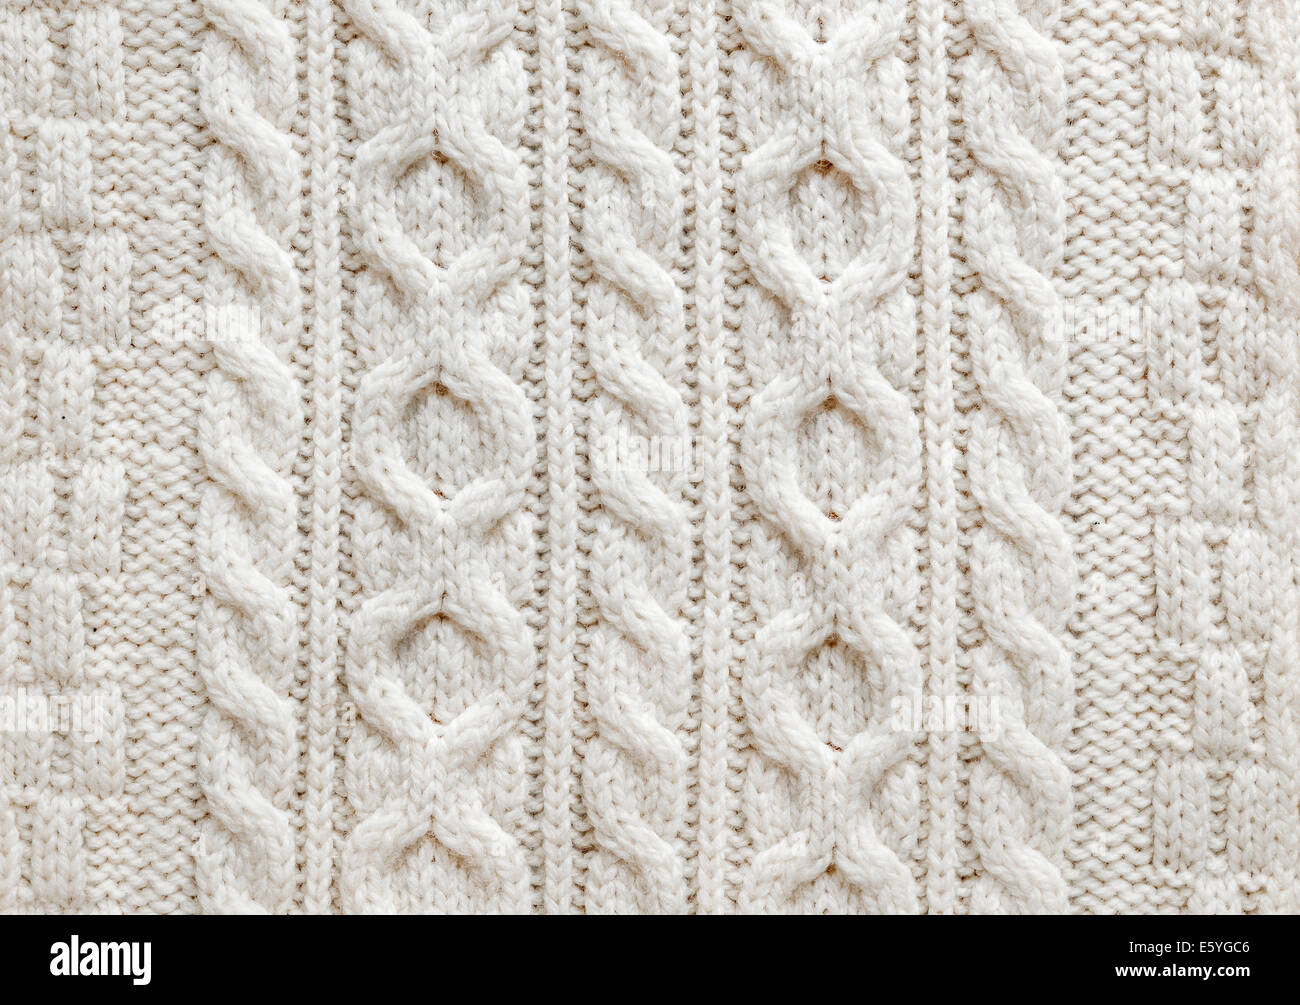 Knit texture of light natural wool knitted fabric with cable pattern ...